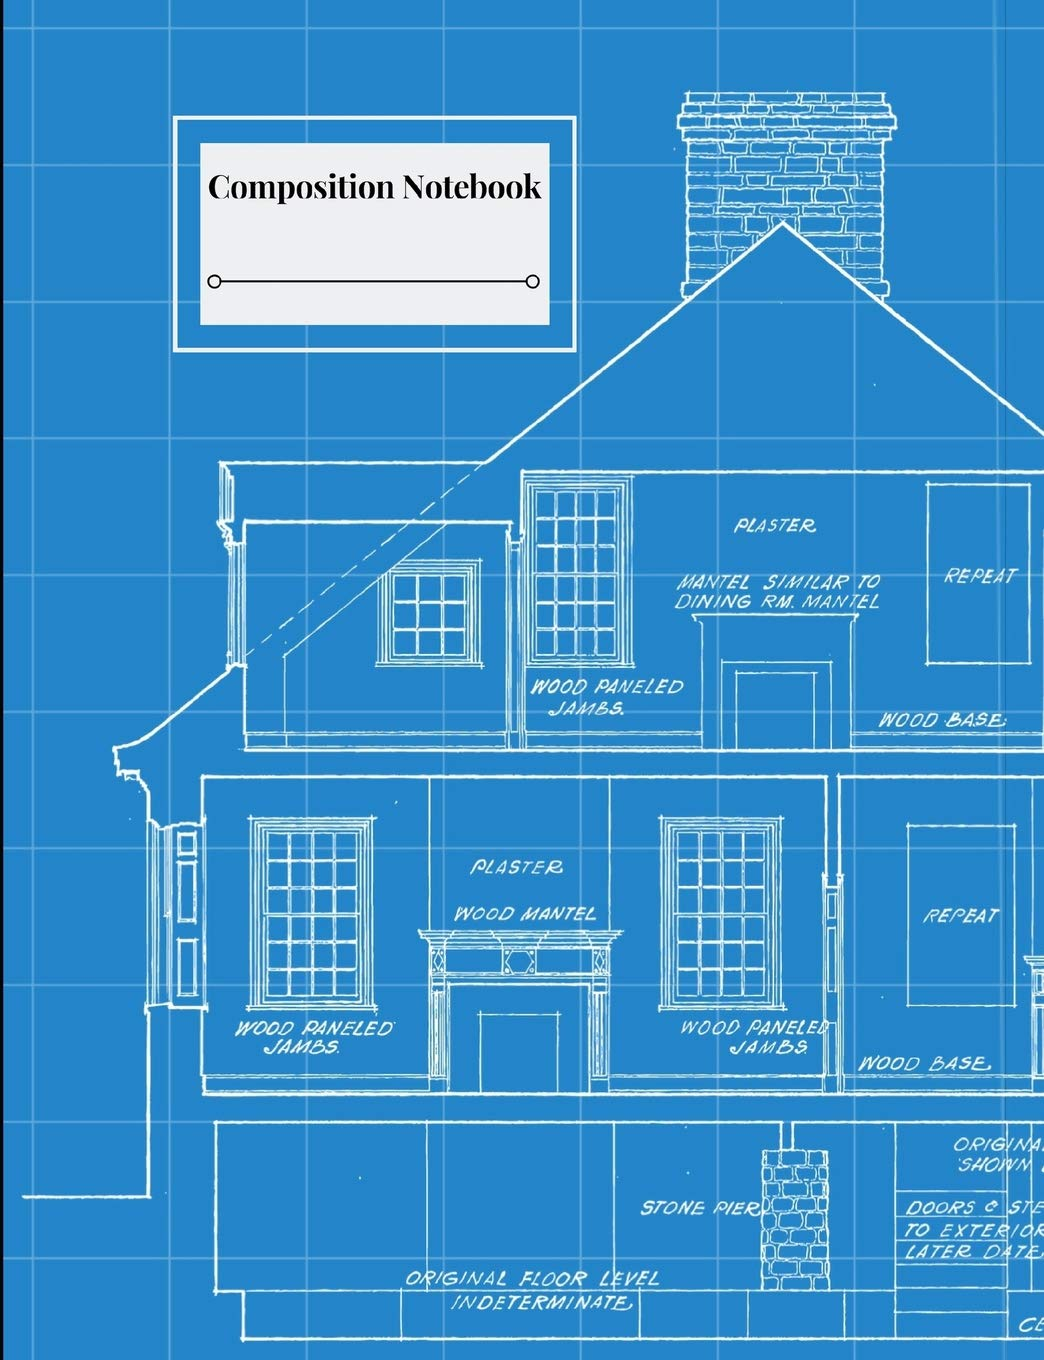 Composition Notebook Architecture Themed Blueprint Look House